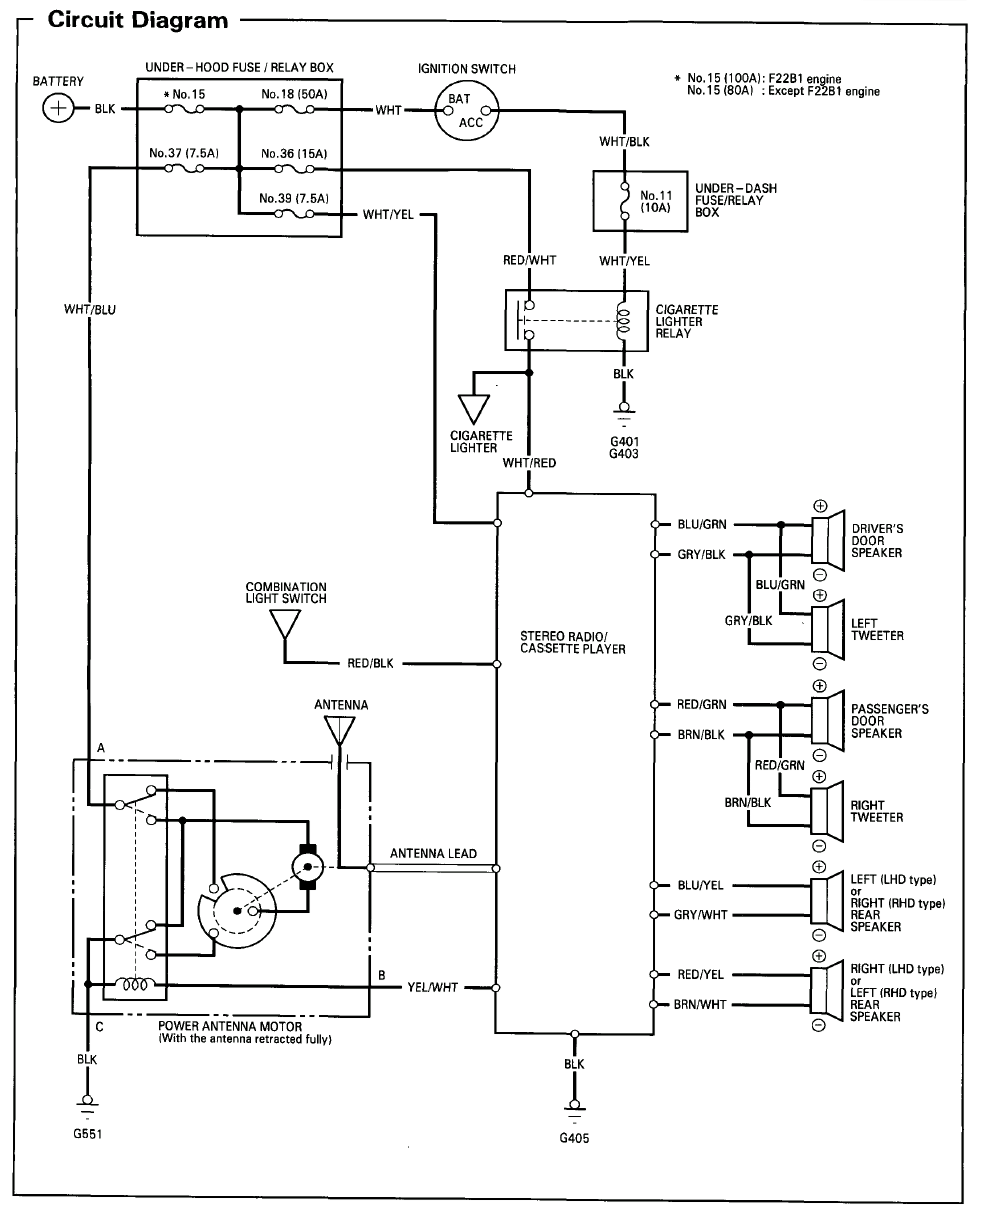 1997 Chevy Silverado Knock Sensor Location furthermore Cummins N14 Celect Wiring Diagram in addition Transmission Wiring Chevy 4l60e Diagram Online New 2000 Silverado With likewise Chevy S10 Upper Control Arm Bushings besides 27naj Fuel Pump Relay Fuse 1994 Gmc Sierra 1500 Ext Cab 350. on 94 chevy 1500 fuse diagram